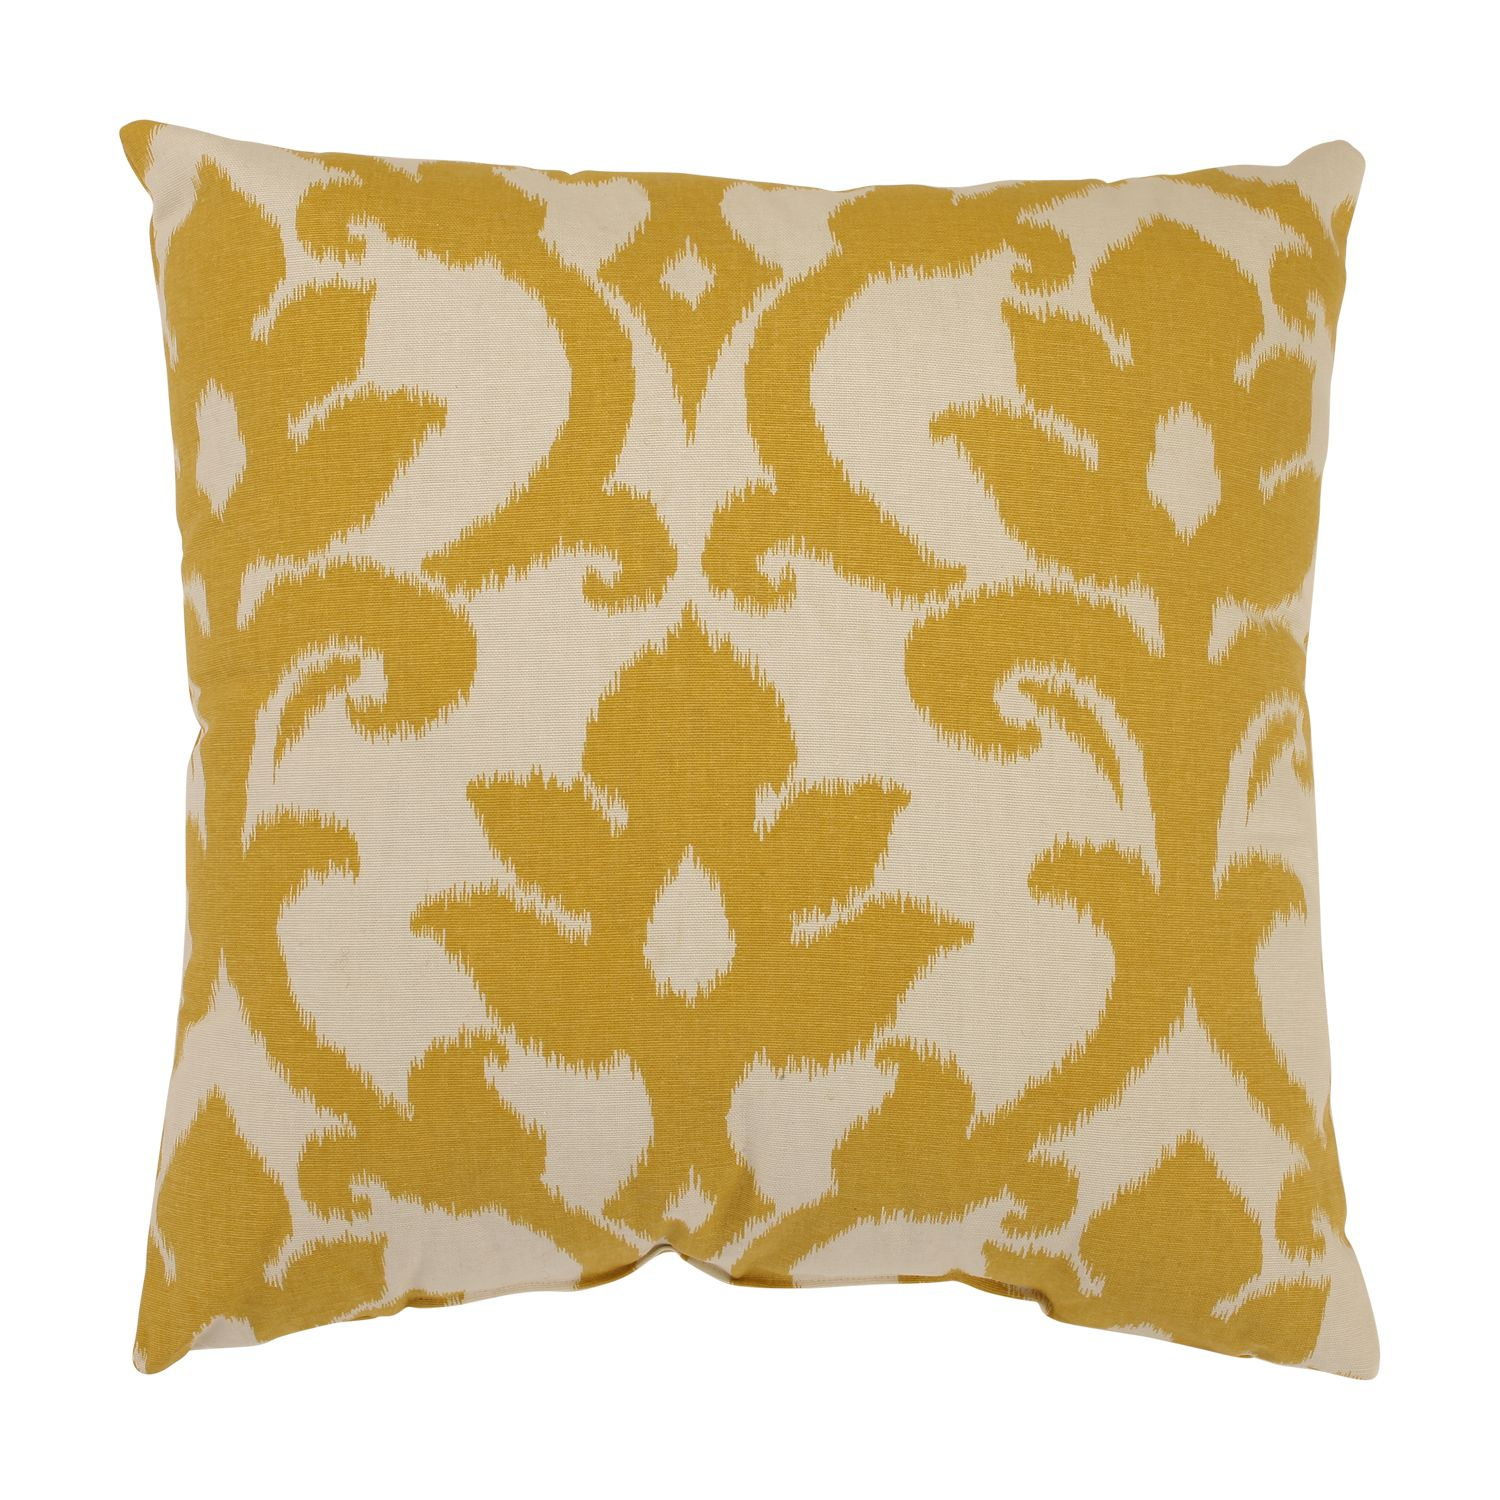 Toss This Gold Damask Throw Pillow On A Chair Sofa Or Bed To Add Bold Bright Pop Of Color Featuring Cream Background With Magnified Pattern